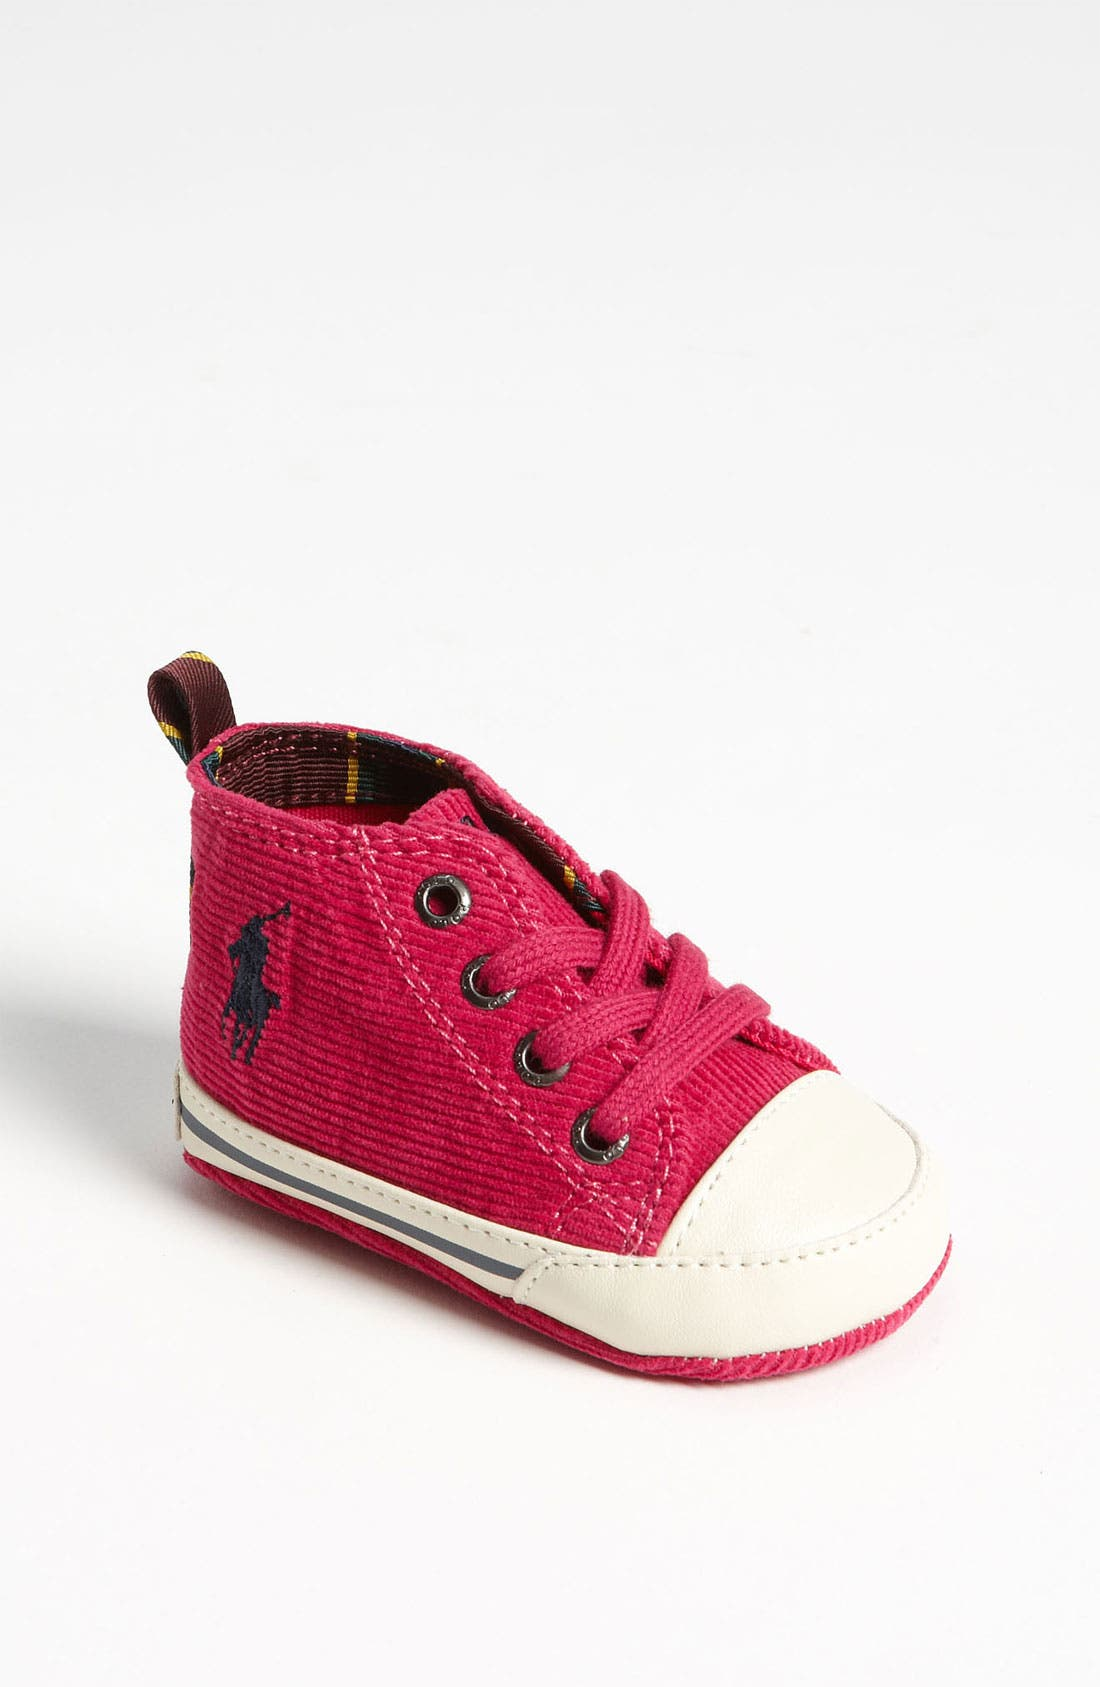 Alternate Image 1 Selected - Ralph Lauren Layette Crib Shoe (Baby)